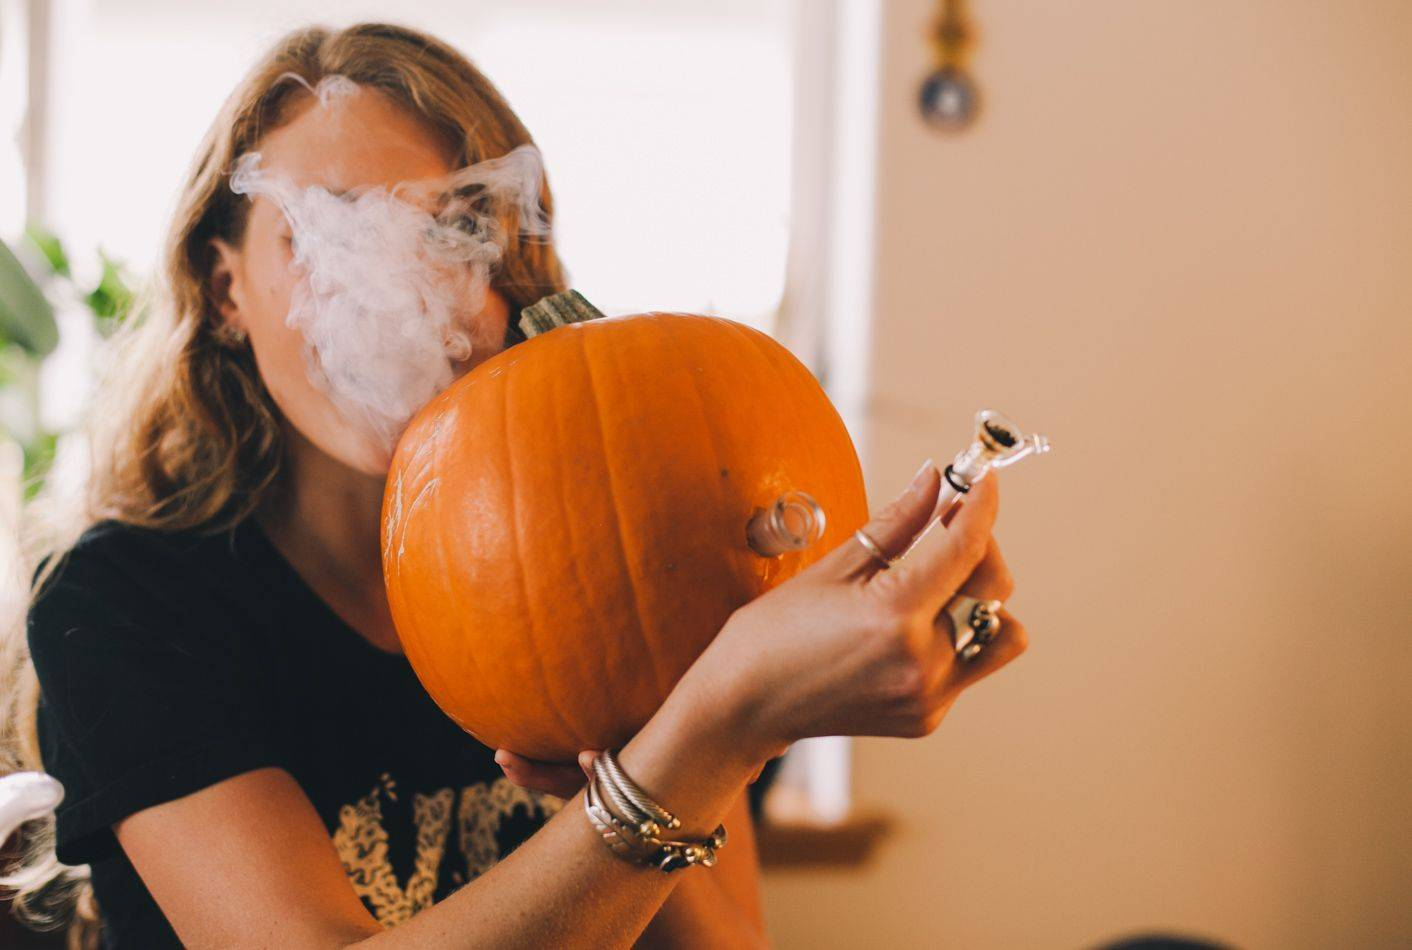 420 Fall and Halloween! Pumpkin Pipe at DopeBoo.com